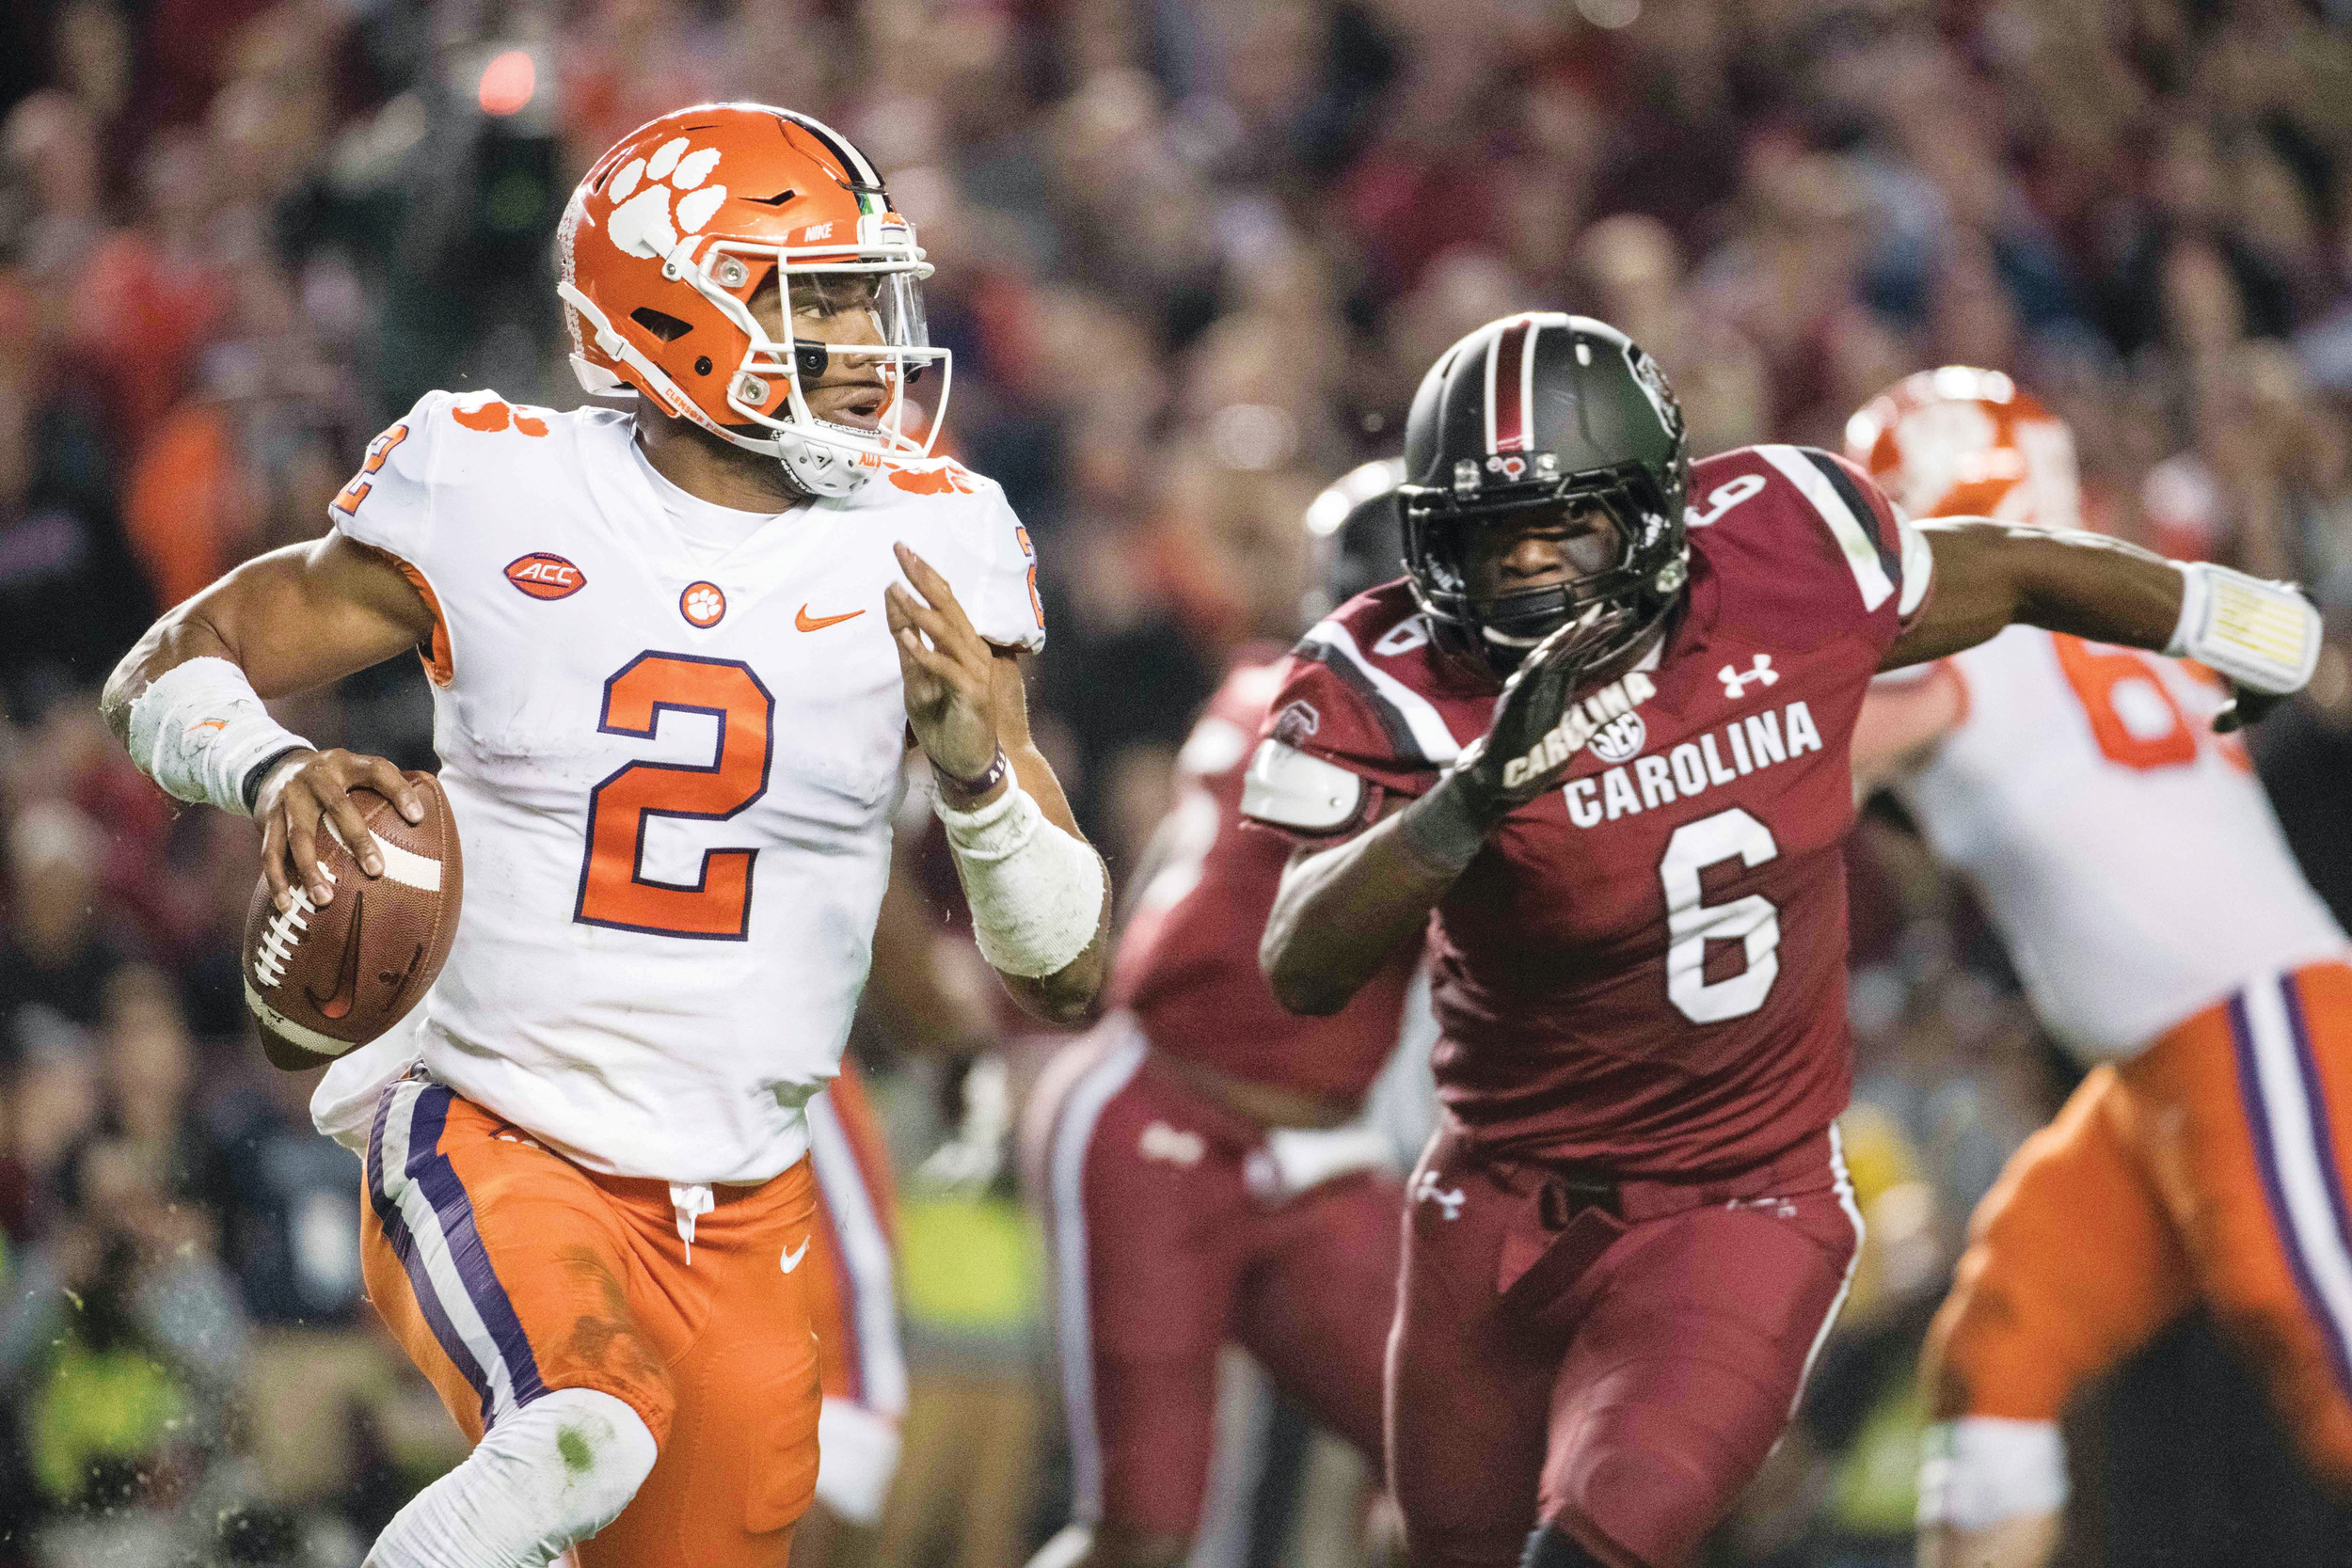 Clemson quarterback Kelly Bryant (2) scrambles from the pocket against South Carolina linebacker T.J. Brunson (6) during the first half of the Tigers' 34-10 victory last Saturday in Columbia. Clemson will face 10-1 Miami in the ACC Championship Game on Saturday.